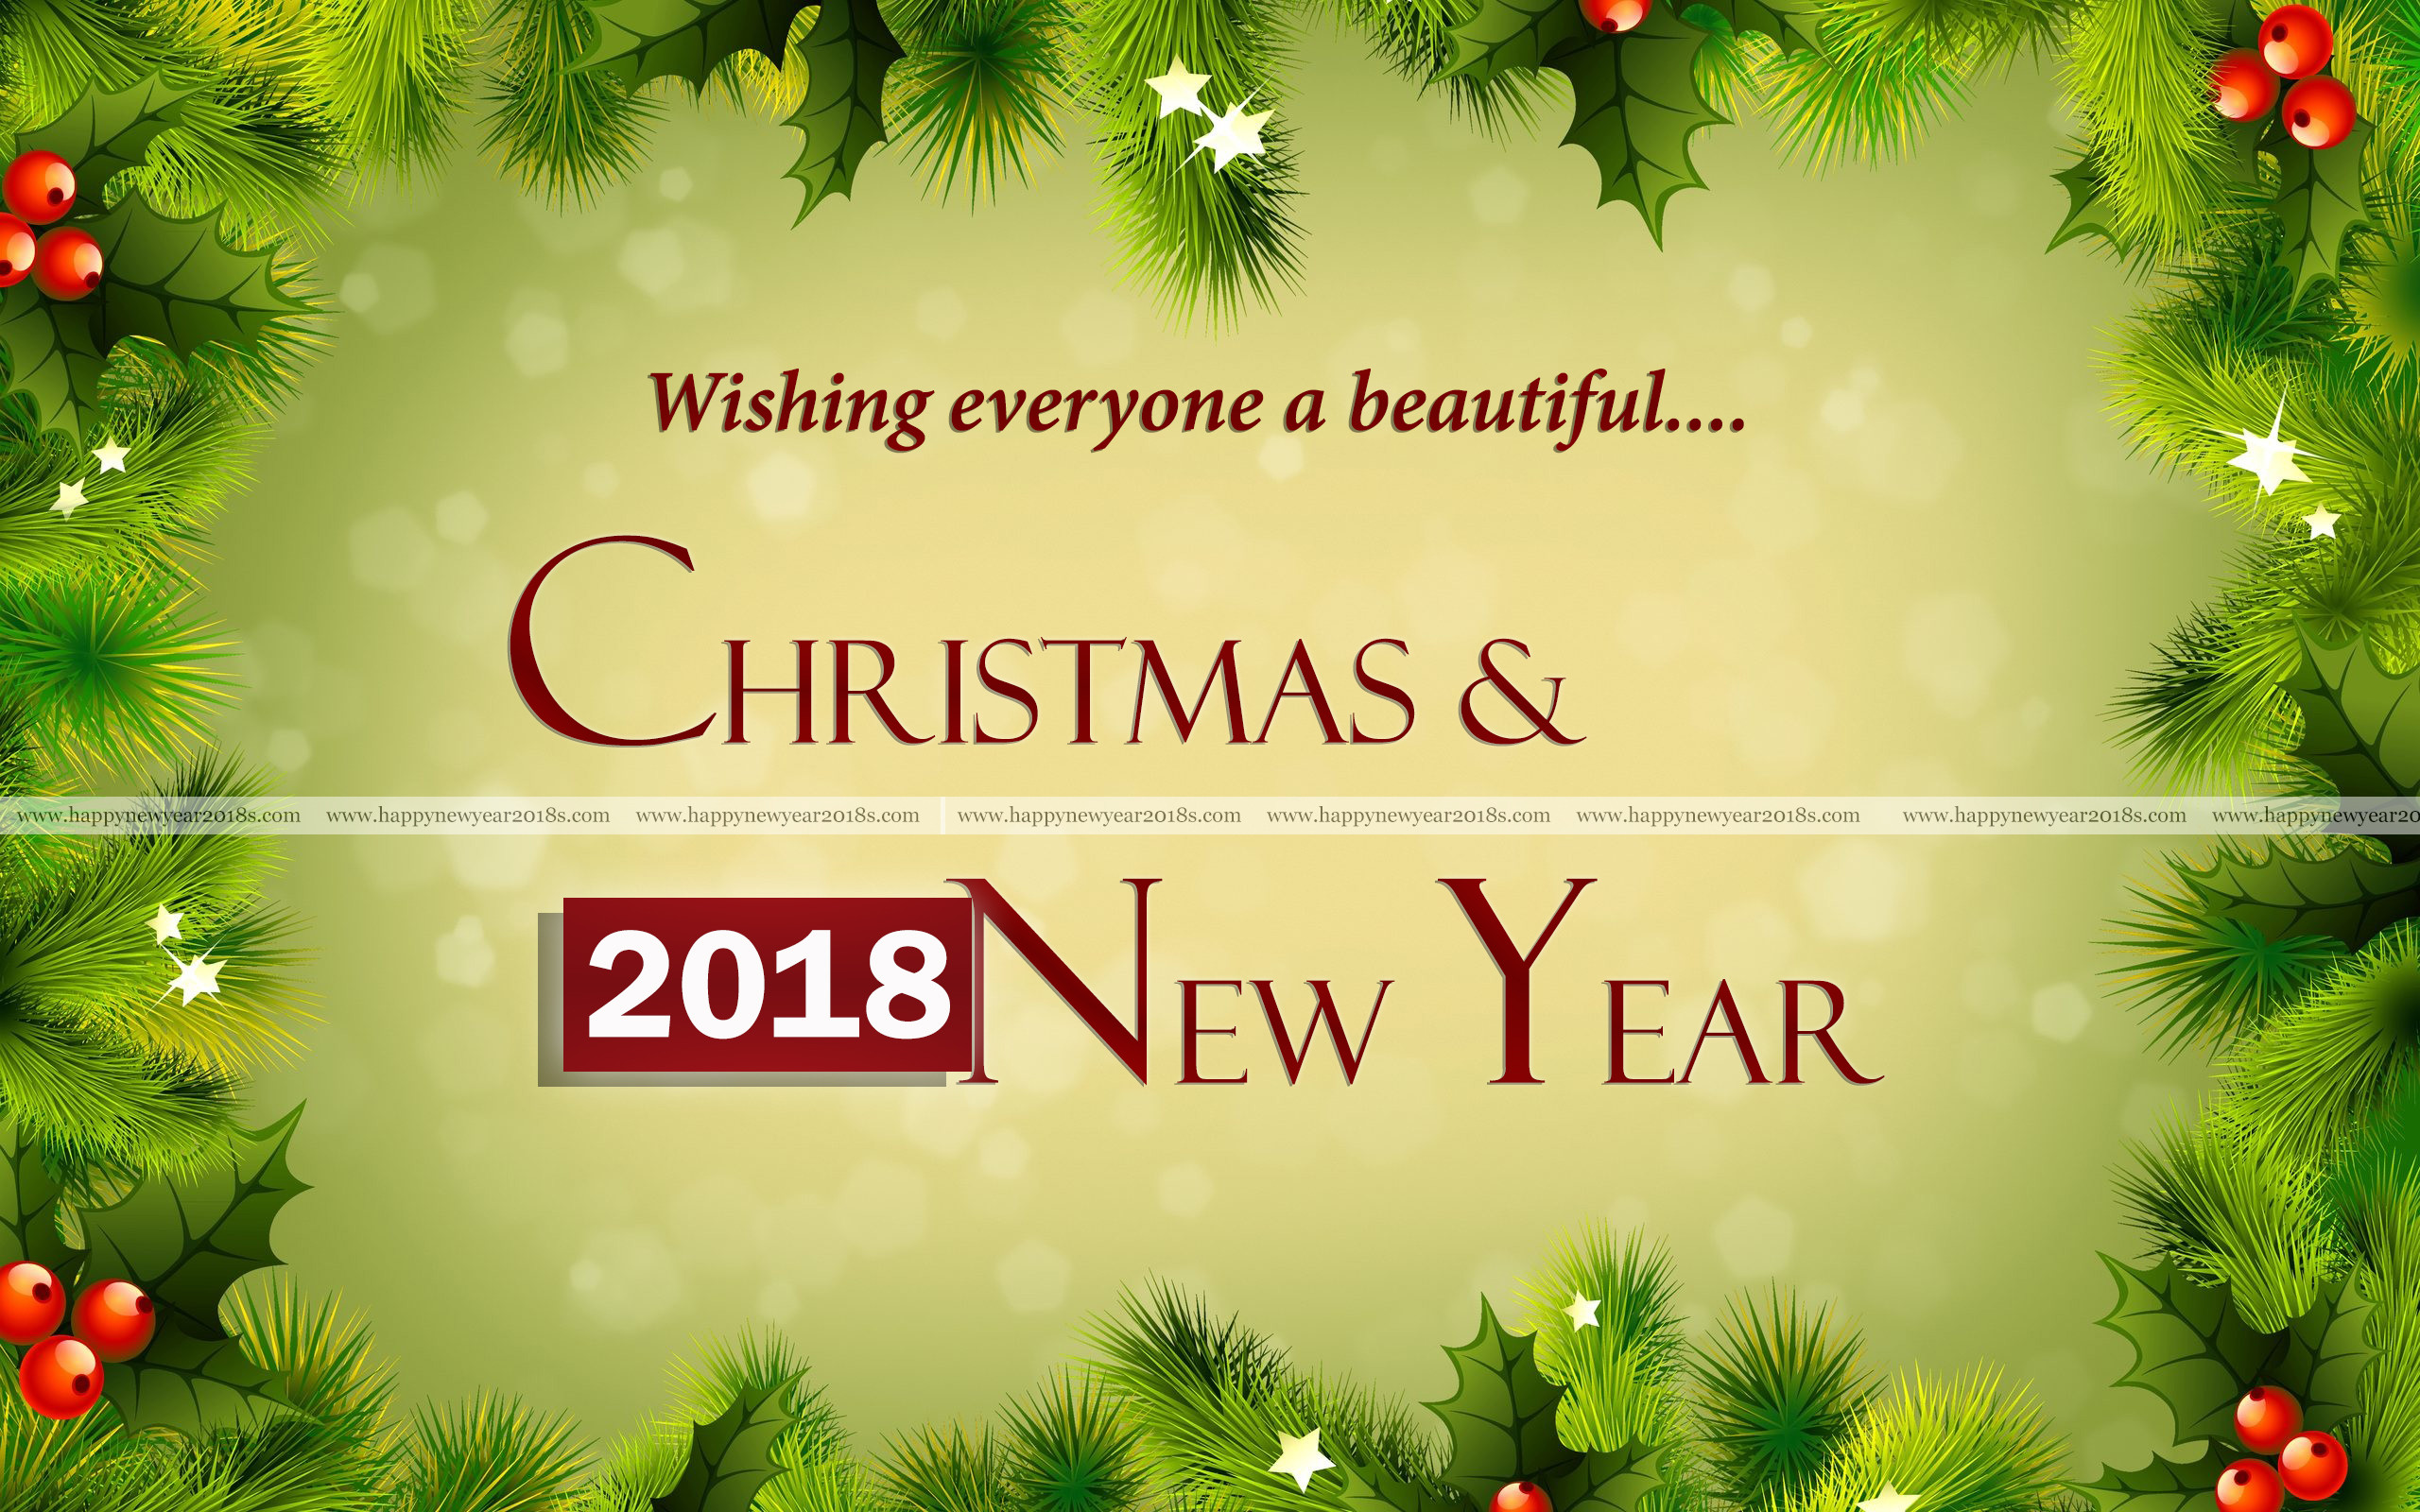 2560x1600 merry christmas 2017 images pictures wallpapers happy new year 2018 images